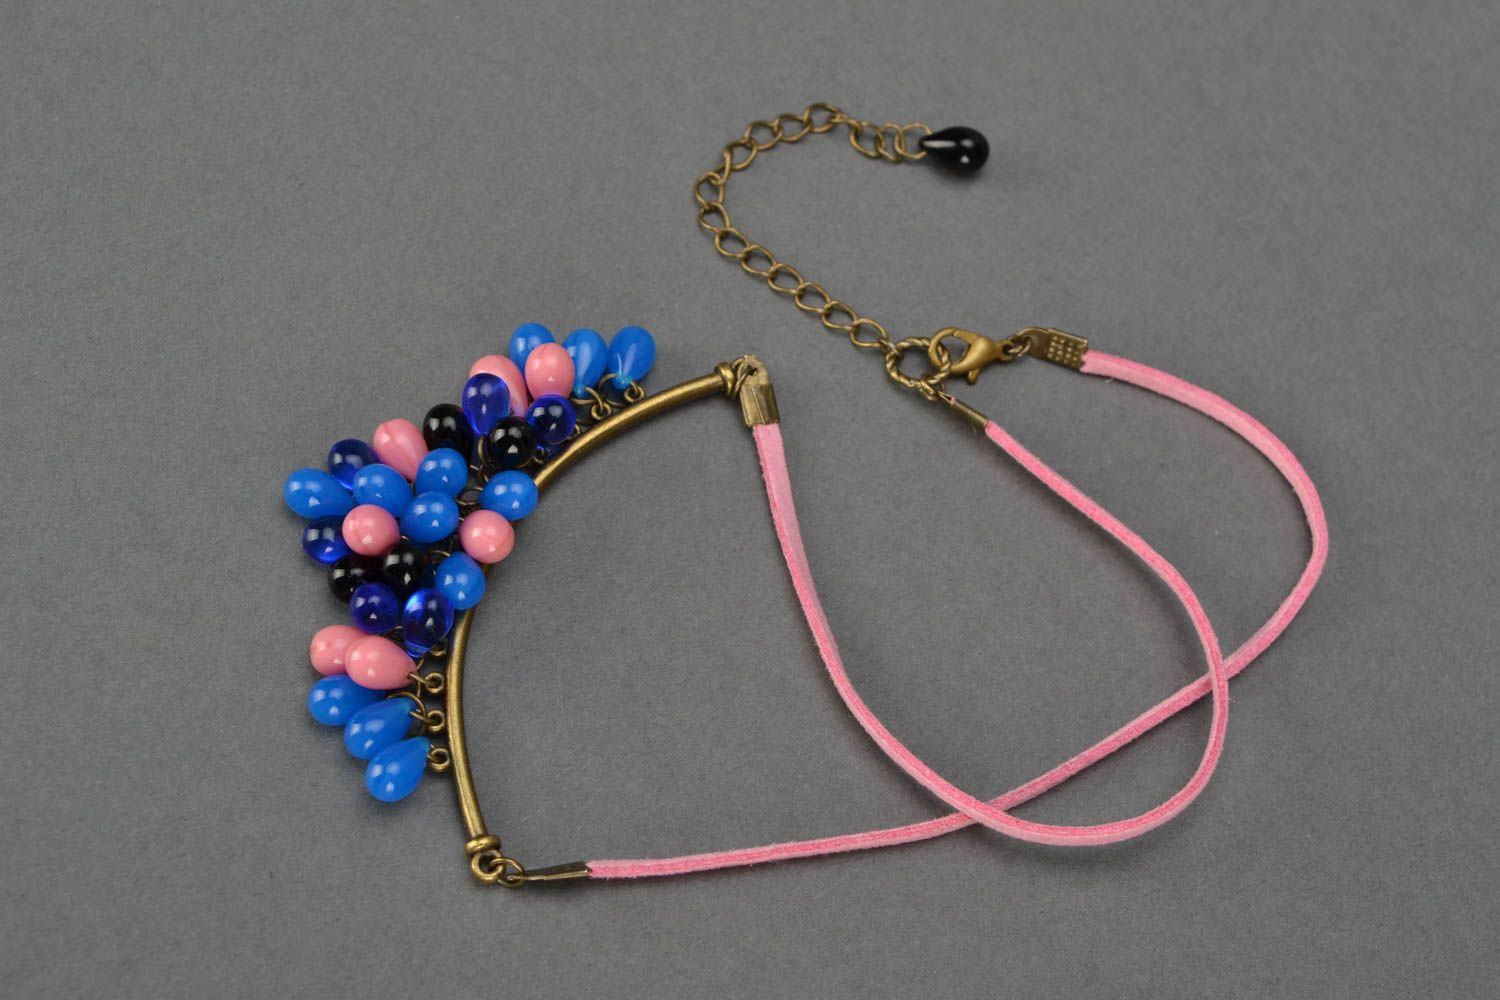 Handmade women's necklace with bright glass beads on suede pink cord photo 4